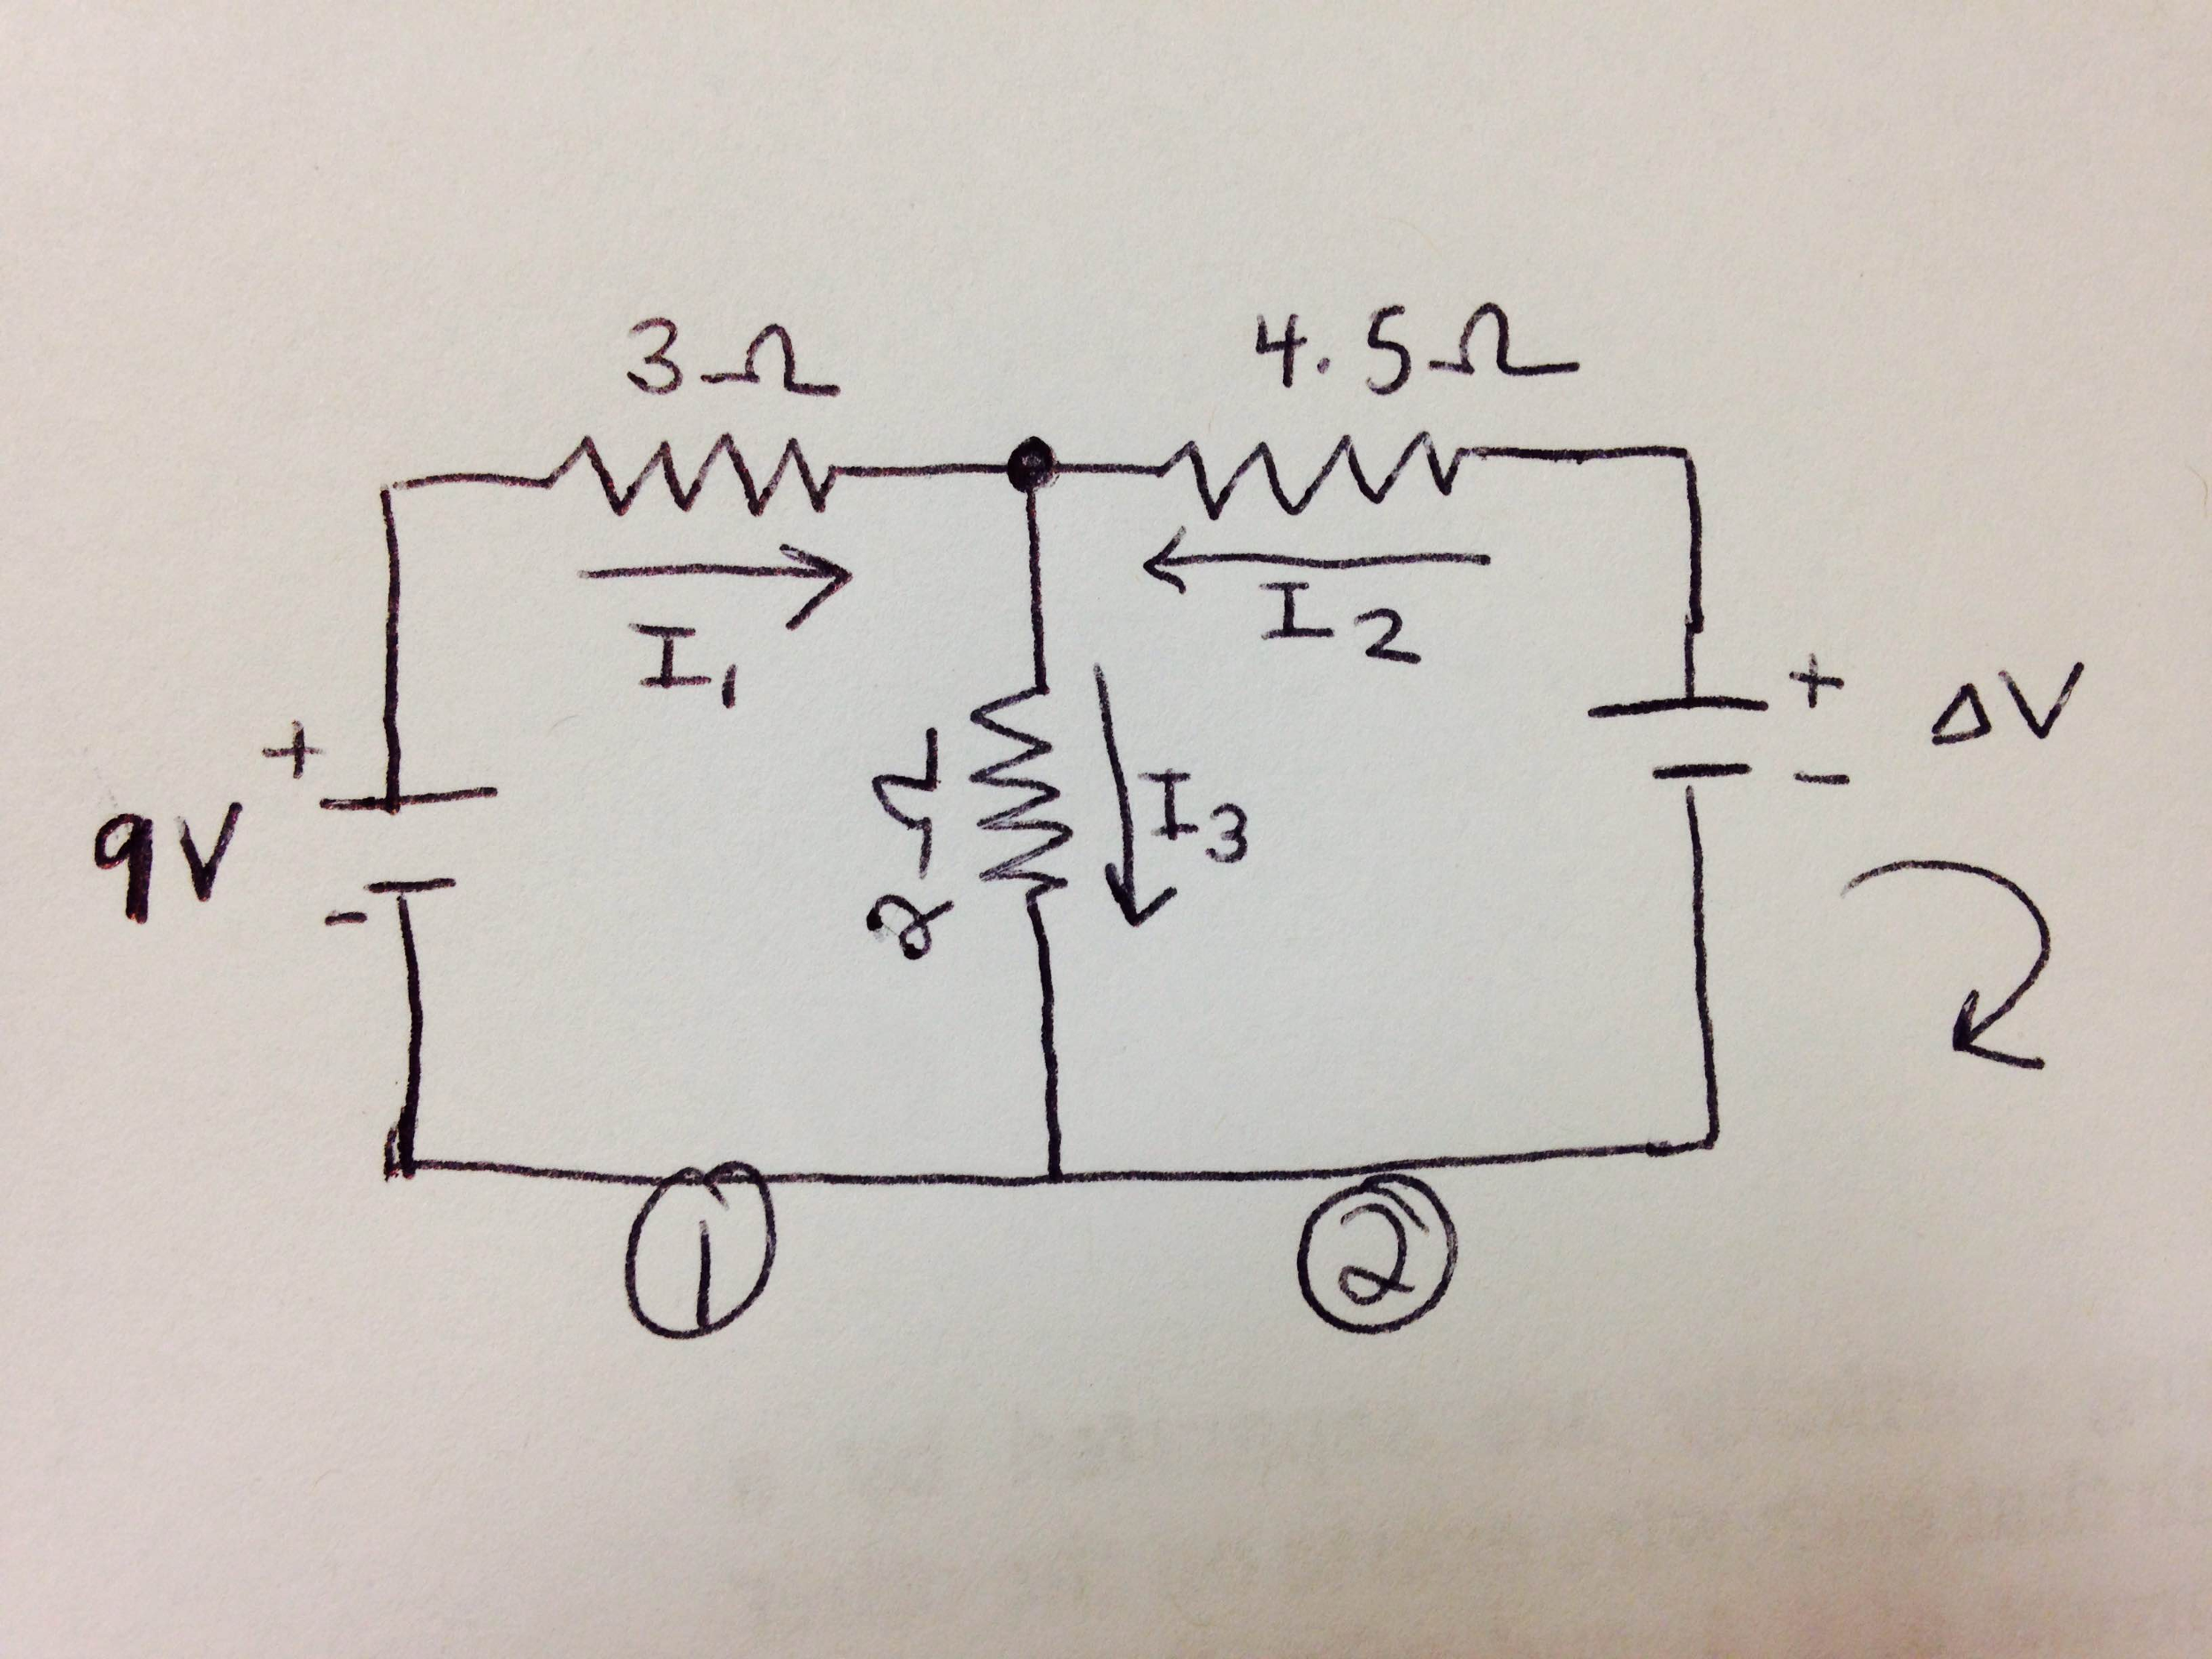 Electric Circuit With 2 Batteries - Wiring Diagram For Light Switch •